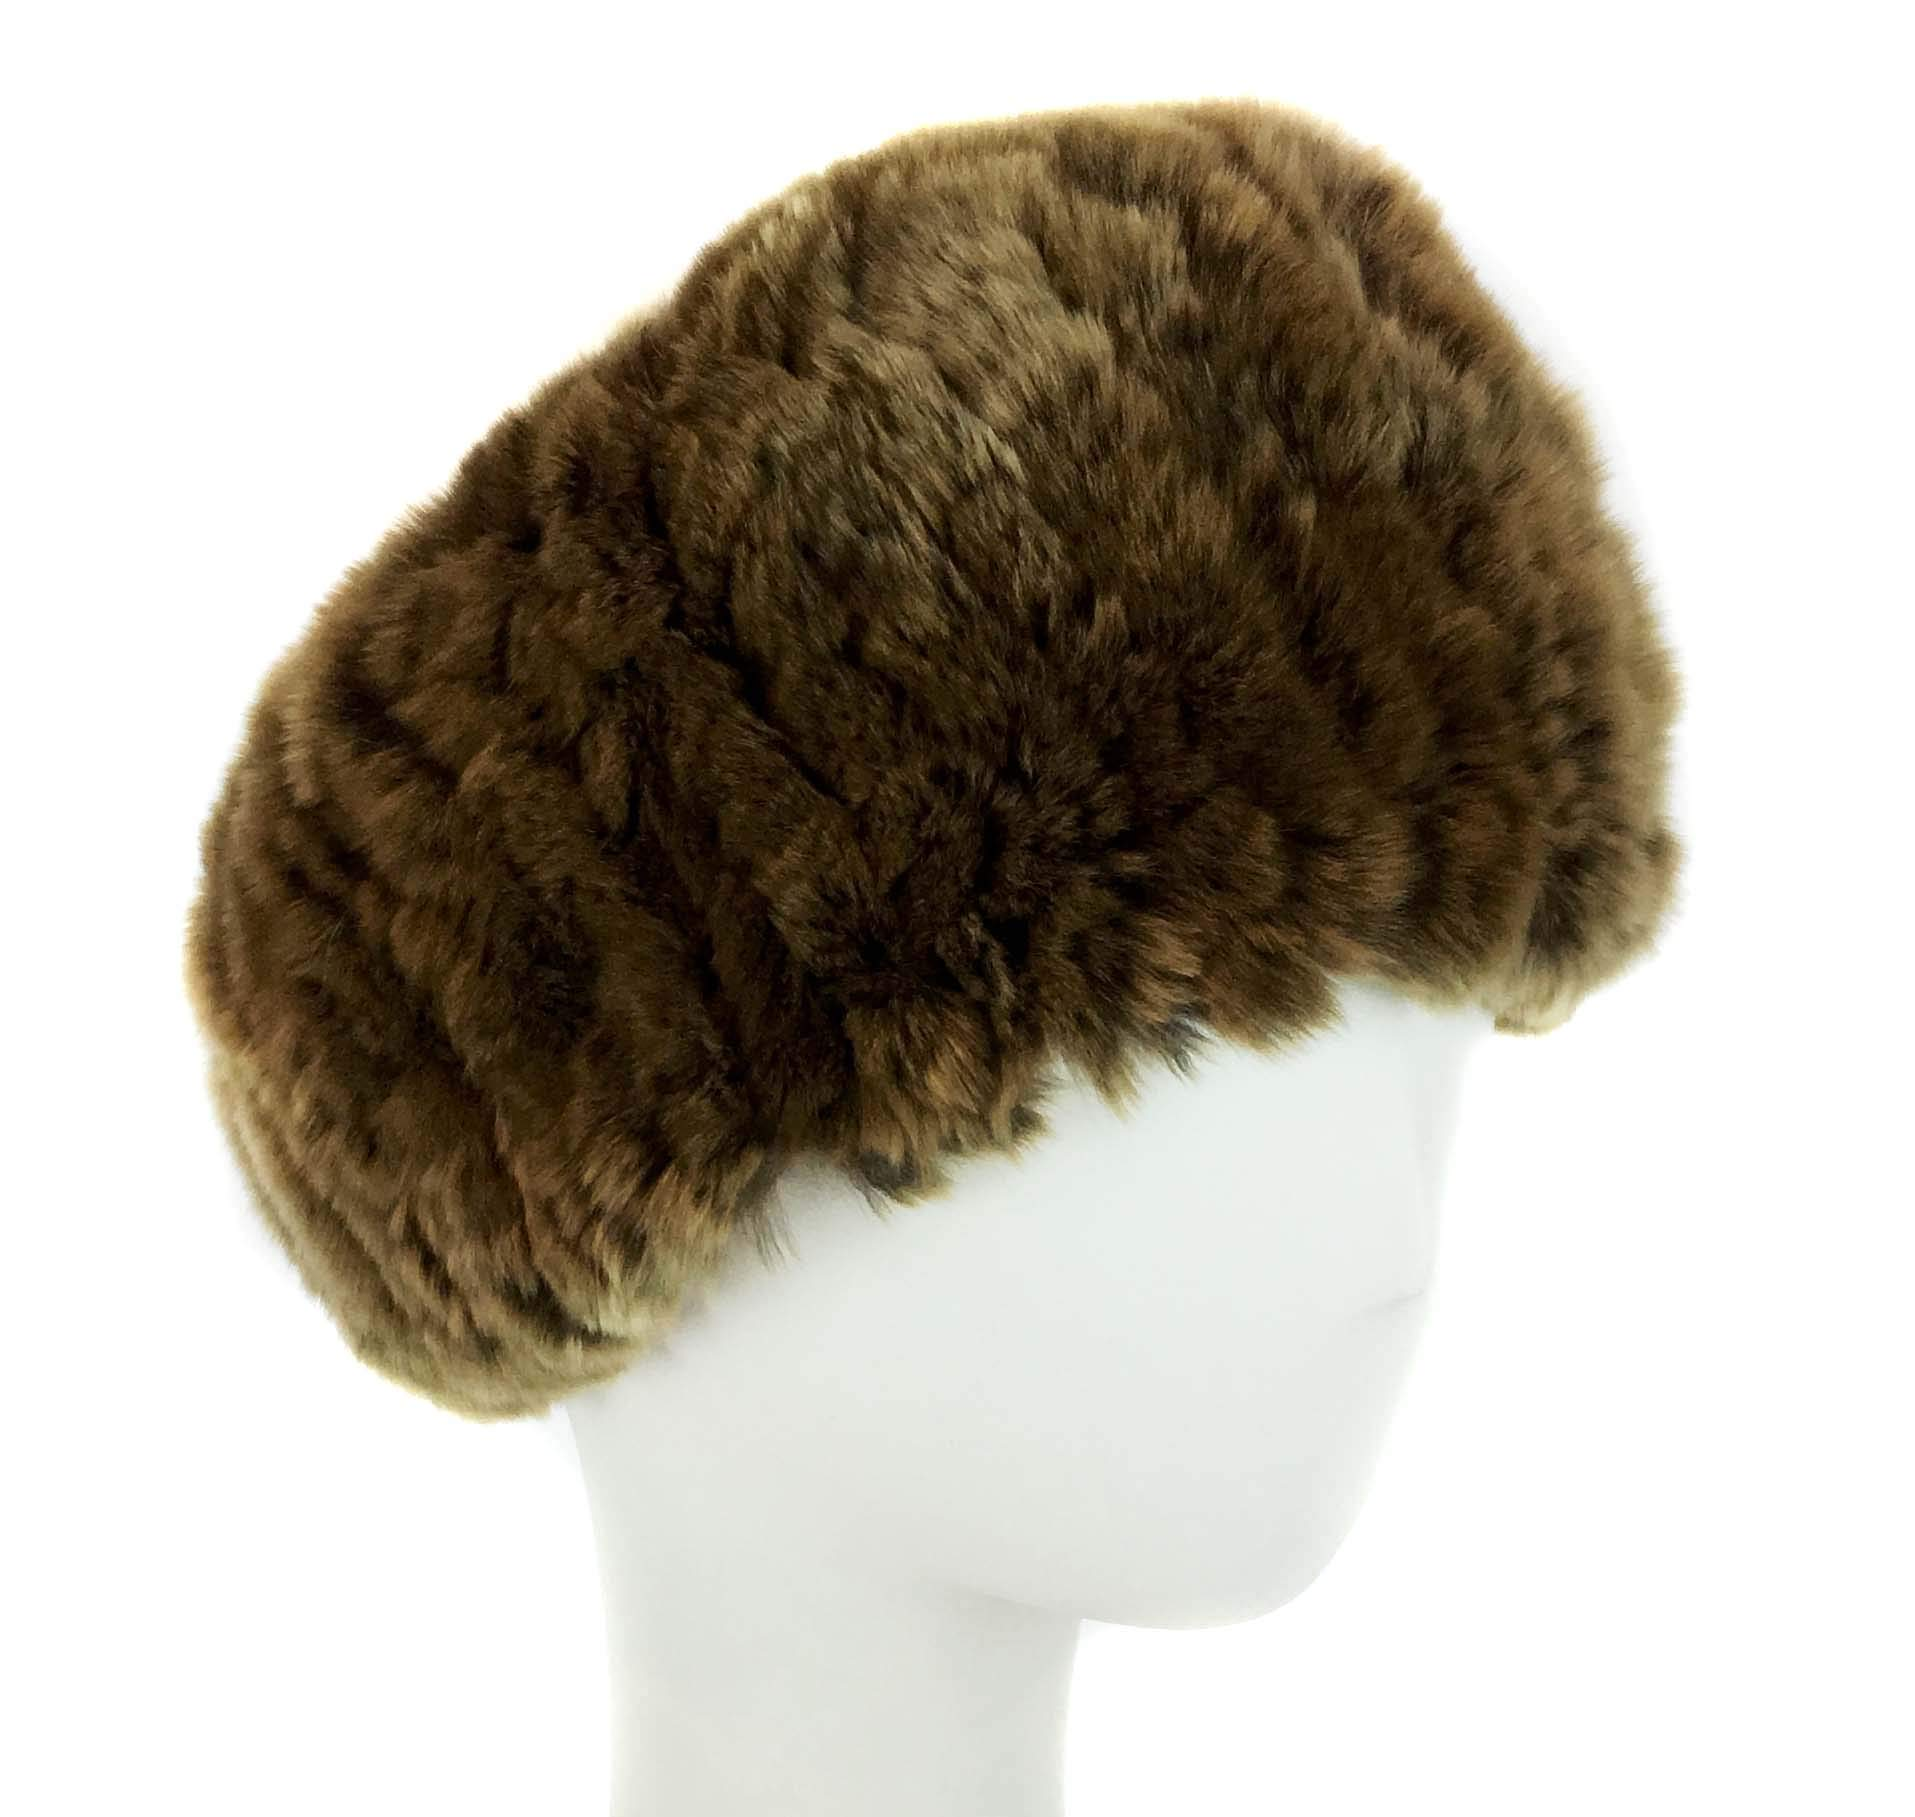 Surell Rex Rabbit Textile Knit Headband - Winter Scarf Ear Warmers - Luxury Gift (Golden Brown)